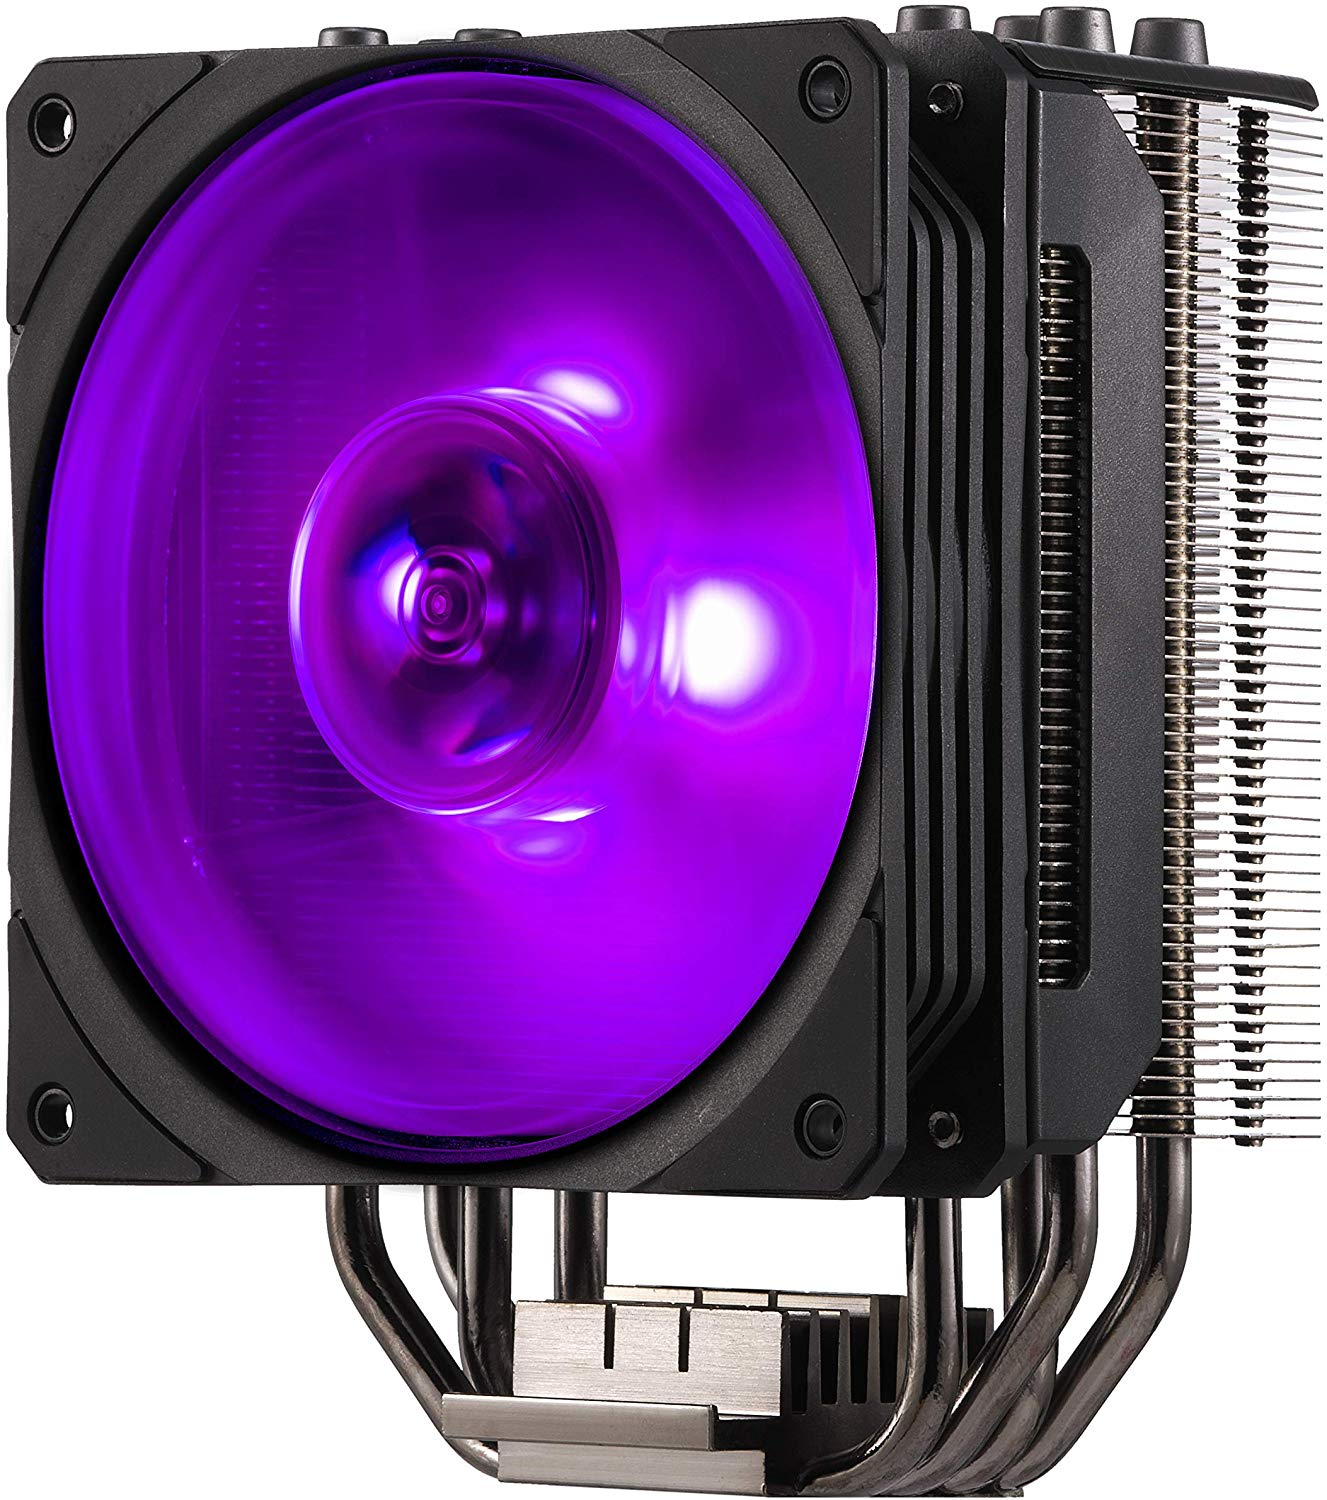 36% off Cooler Master Hyper 212 RGB Black Edition CPU Cooling System